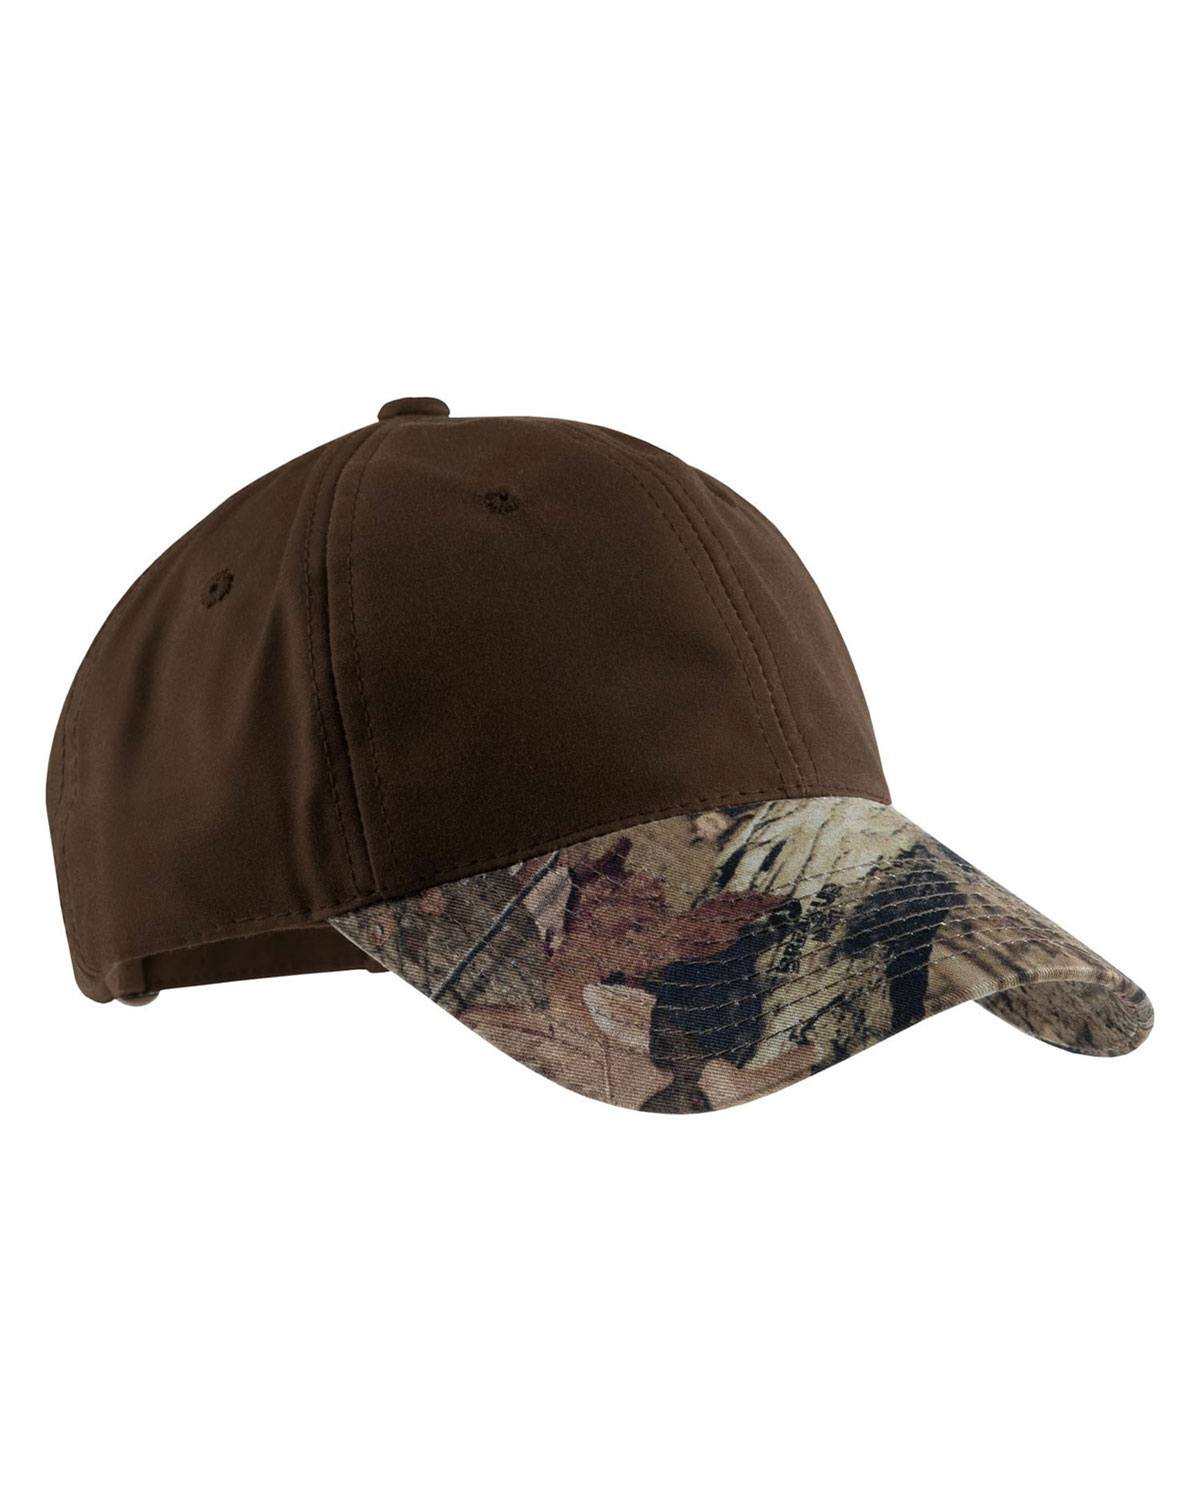 Port Authority C877 Men Pro Camouflage Series Cotton Waxed Cap with Brim at GotApparel